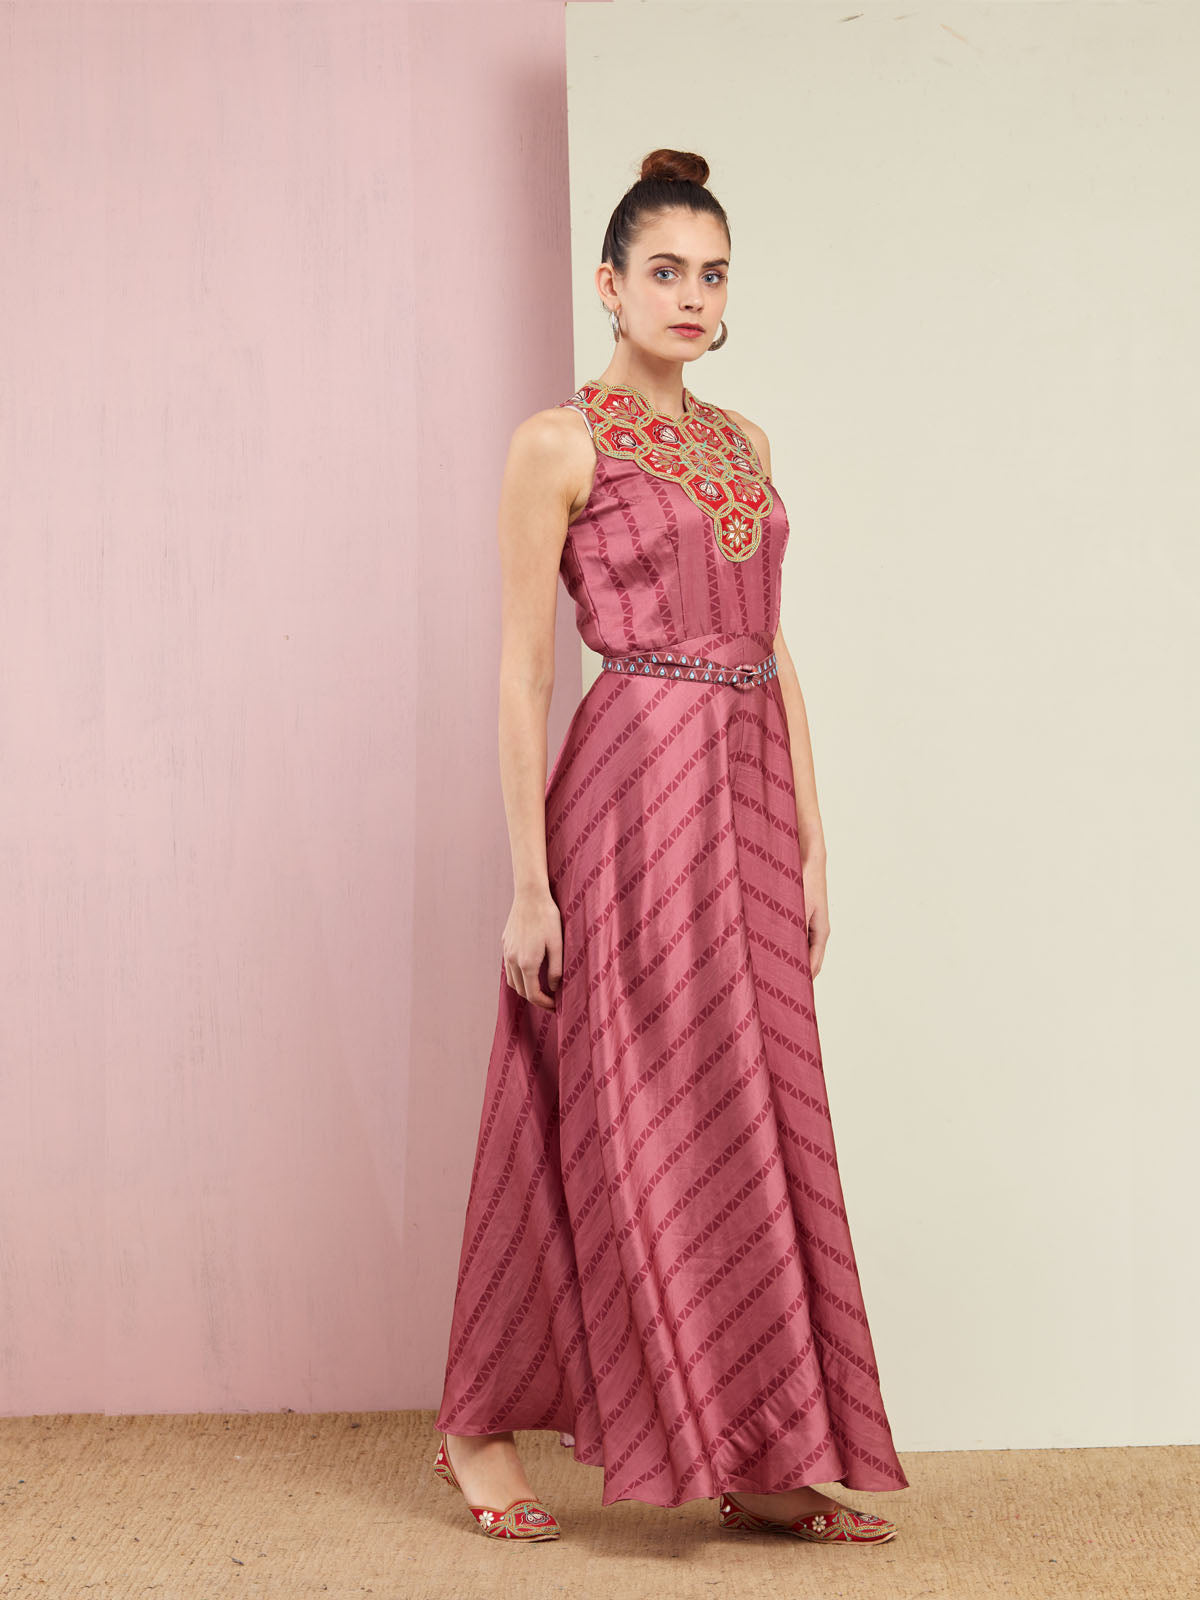 MORBAGH STRIPED ROSE PINK EMBROIDERED AND PRINTED JUMPSUIT WITH GOLDEN BELT